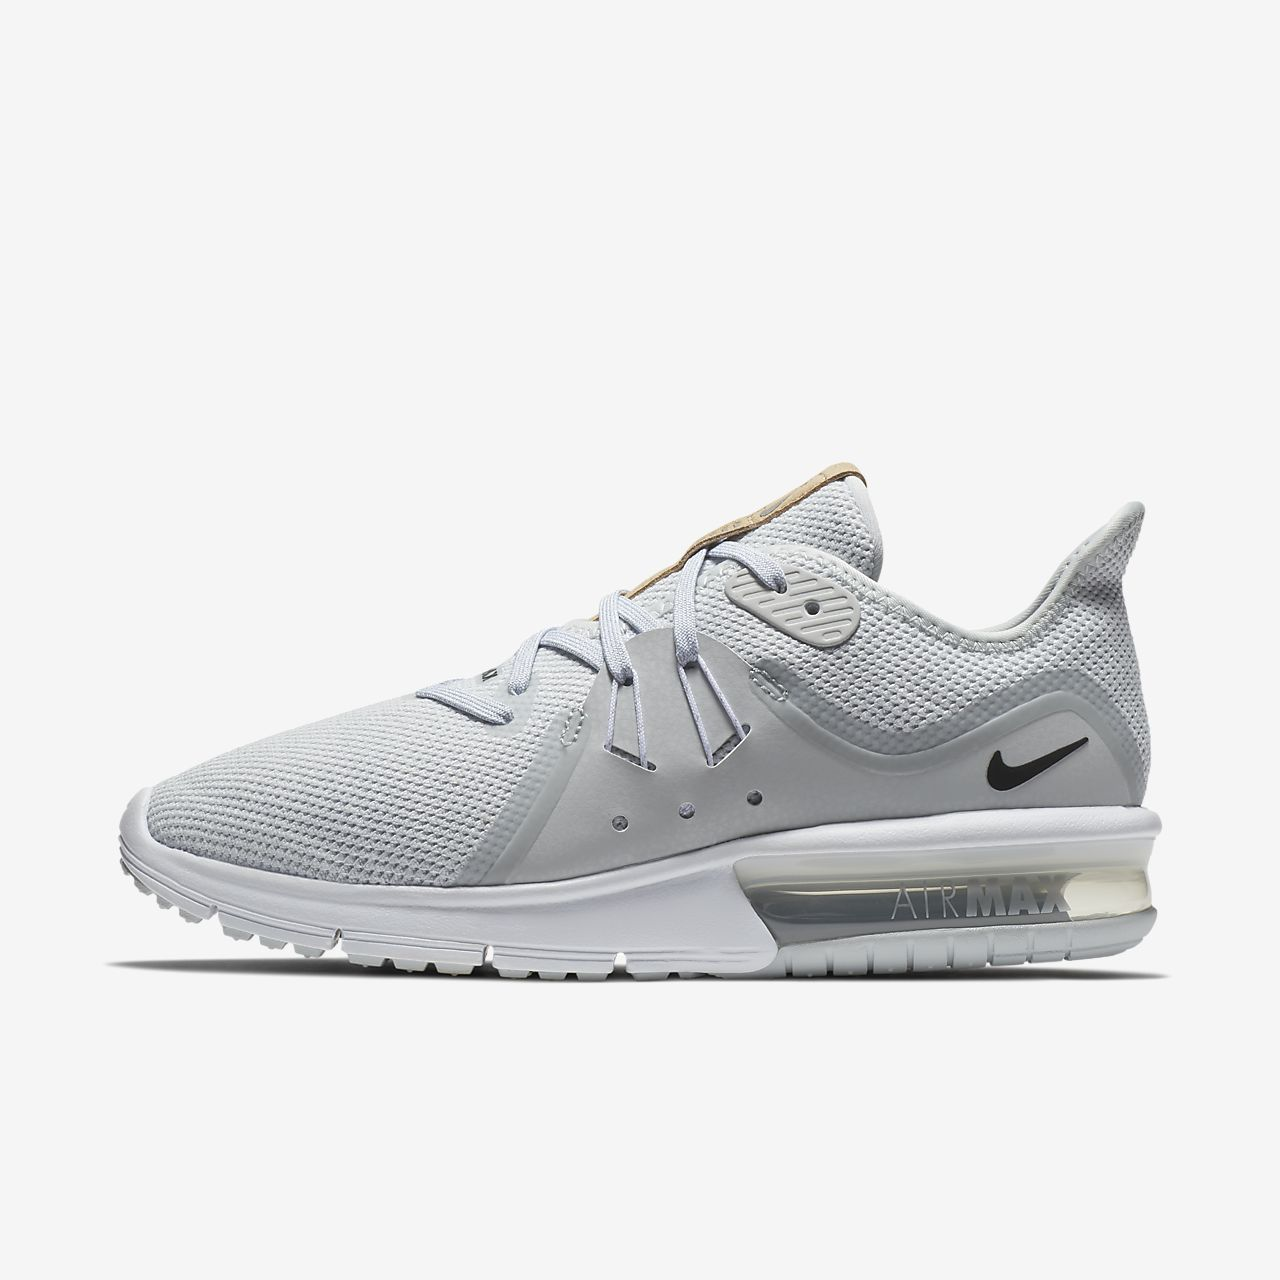 ... Nike Air Max Sequent 3 Women's Running Shoe